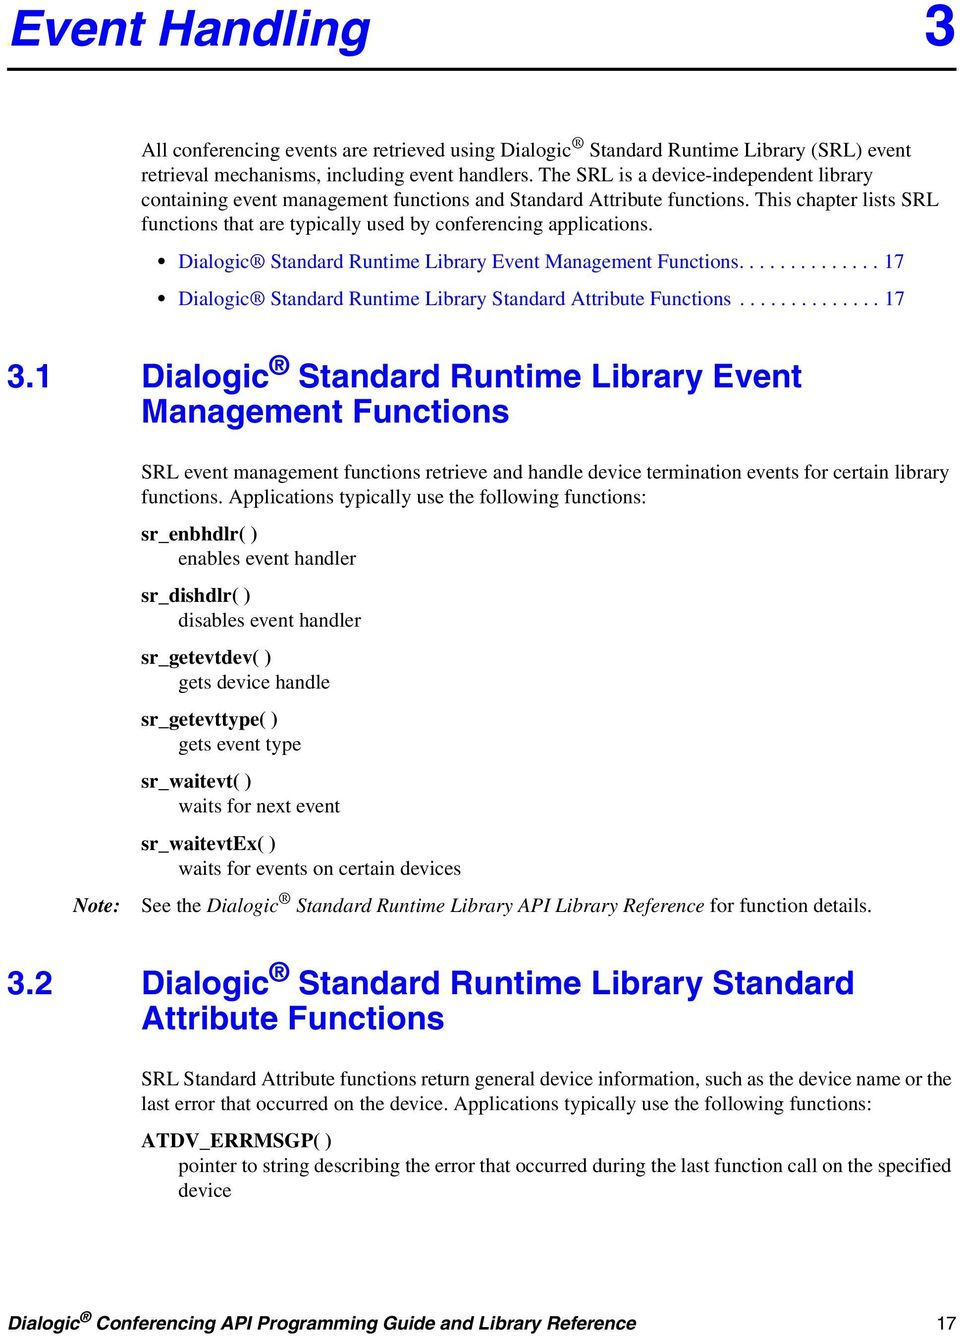 Dialogic Standard Runtime Library Event Management Functions.............. 17 Dialogic Standard Runtime Library Standard Attribute Functions.............. 17 3.